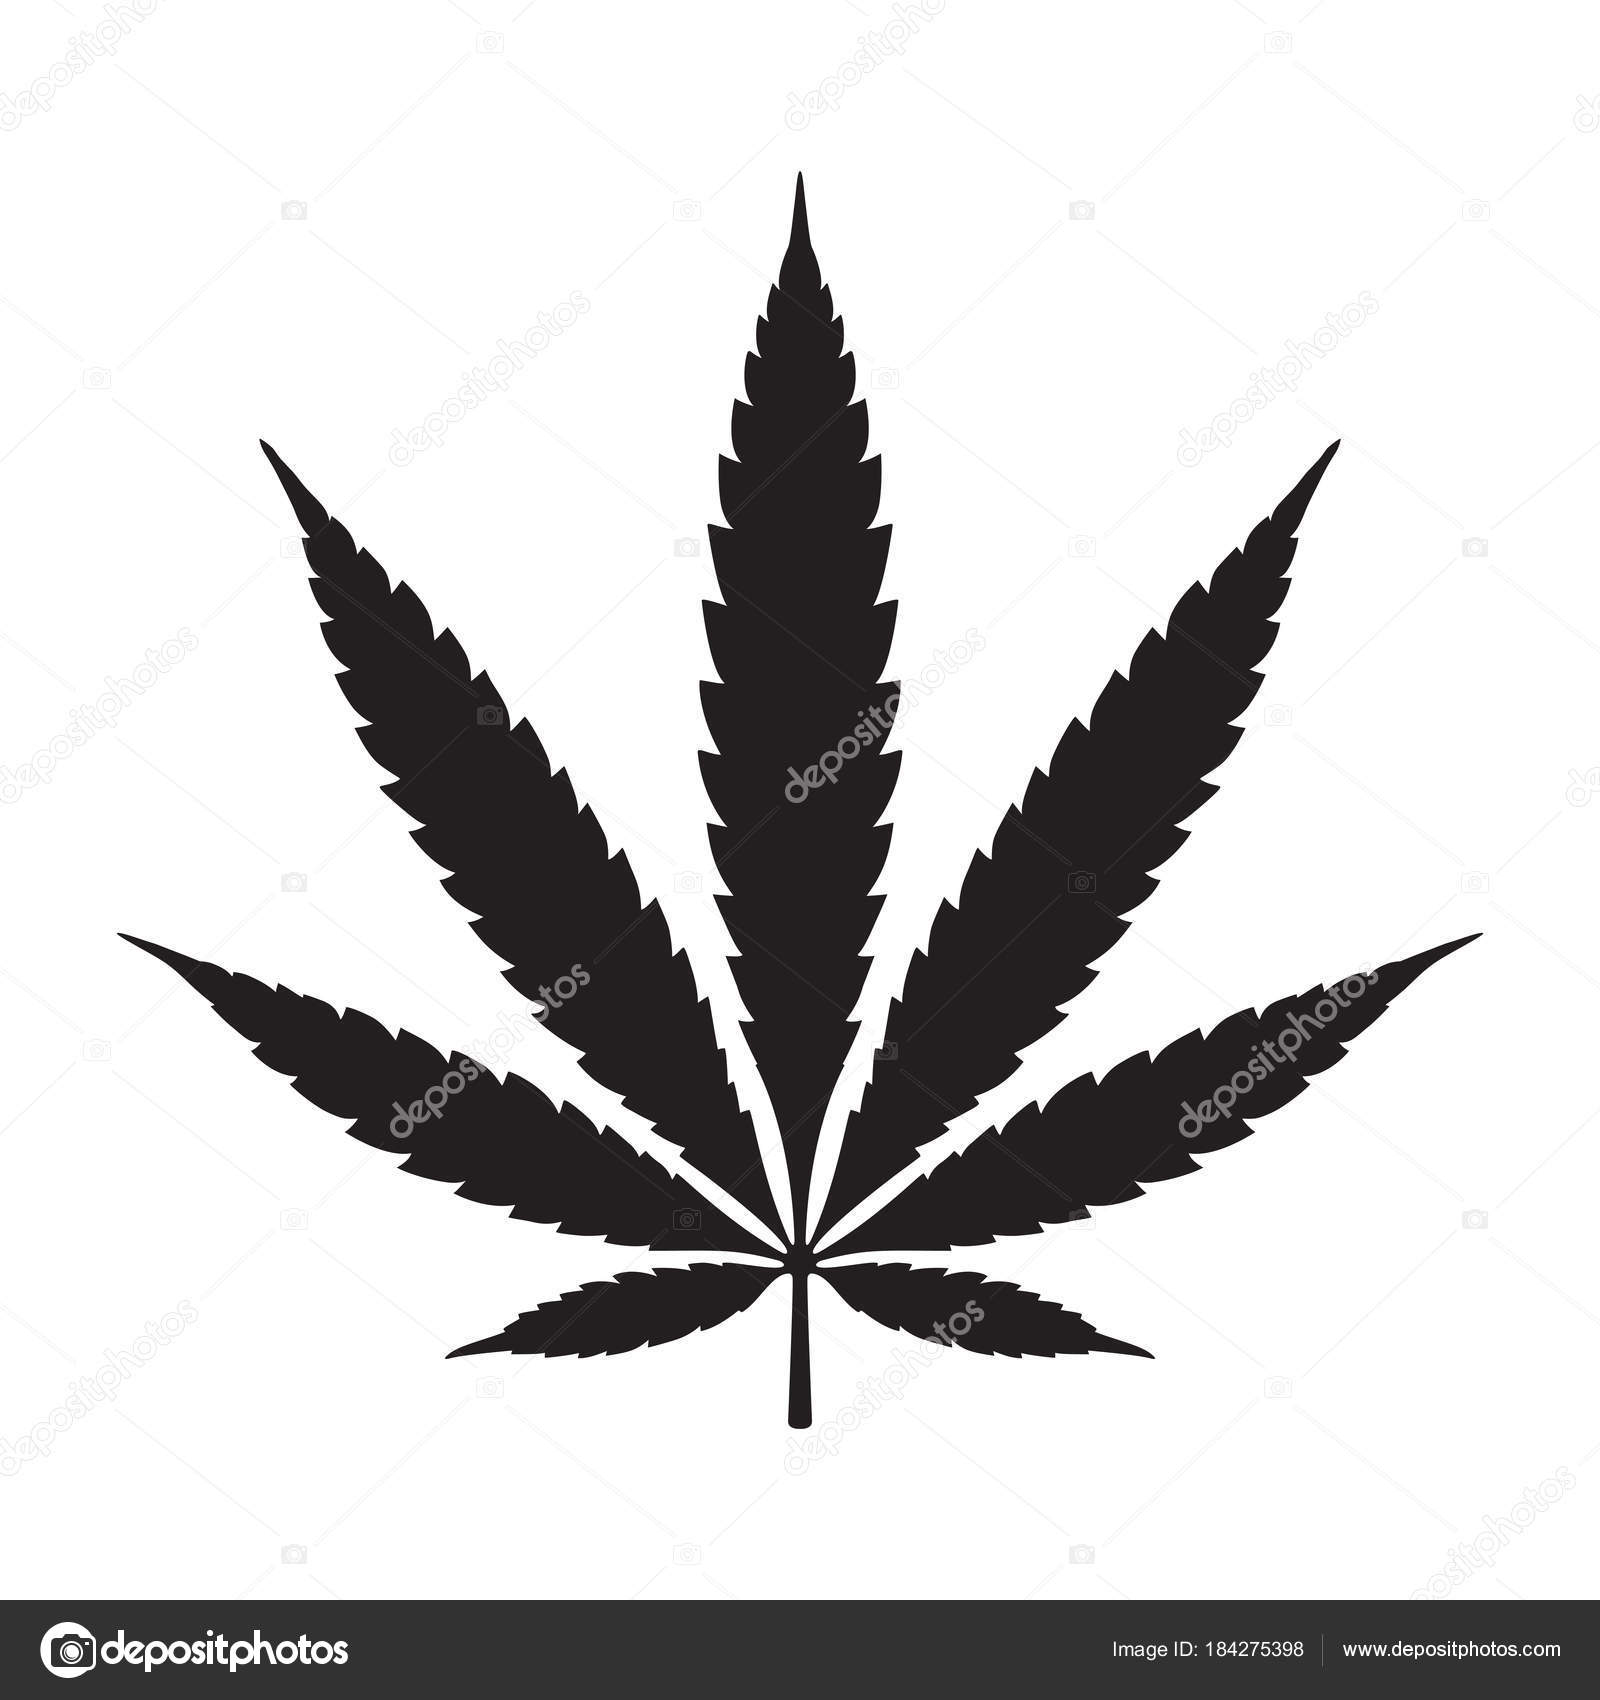 weed marijuana cannabis leaf vector illustration icon logo stock vector c cnuisin 184275398 depositphotos